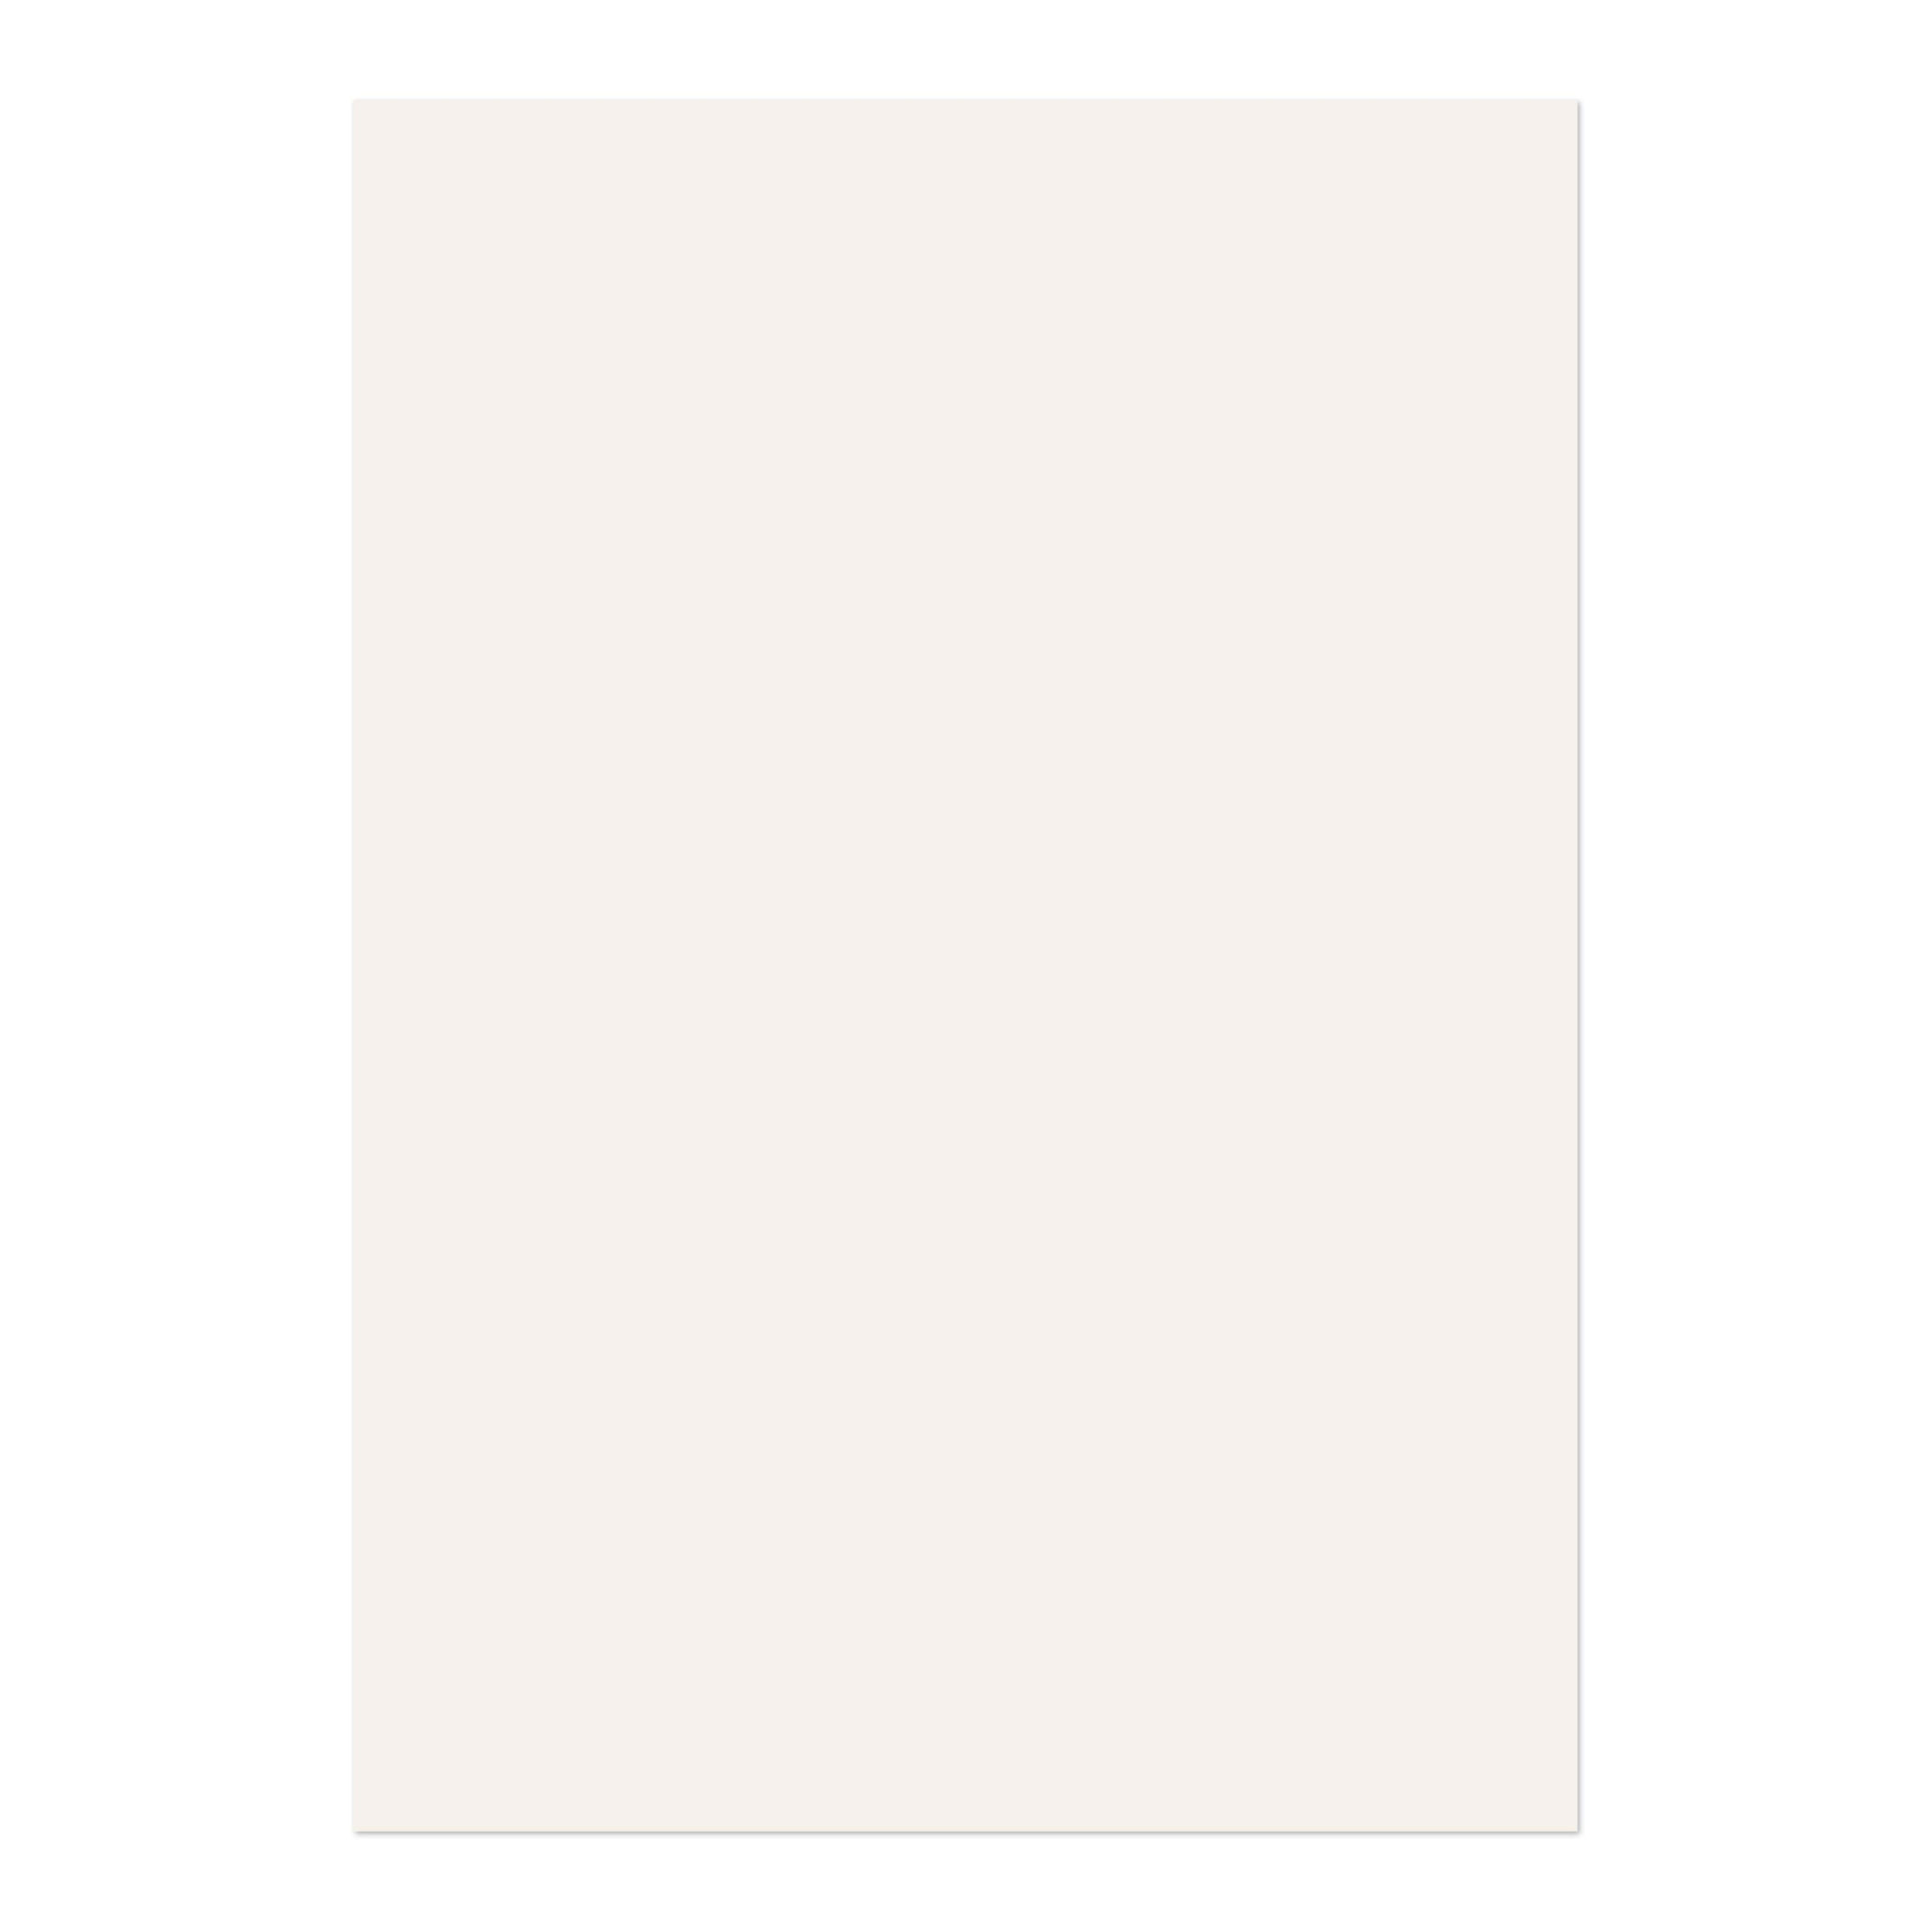 A4 Blake Premium Business Paper A4 120gsm High White Laid (Pack 500)